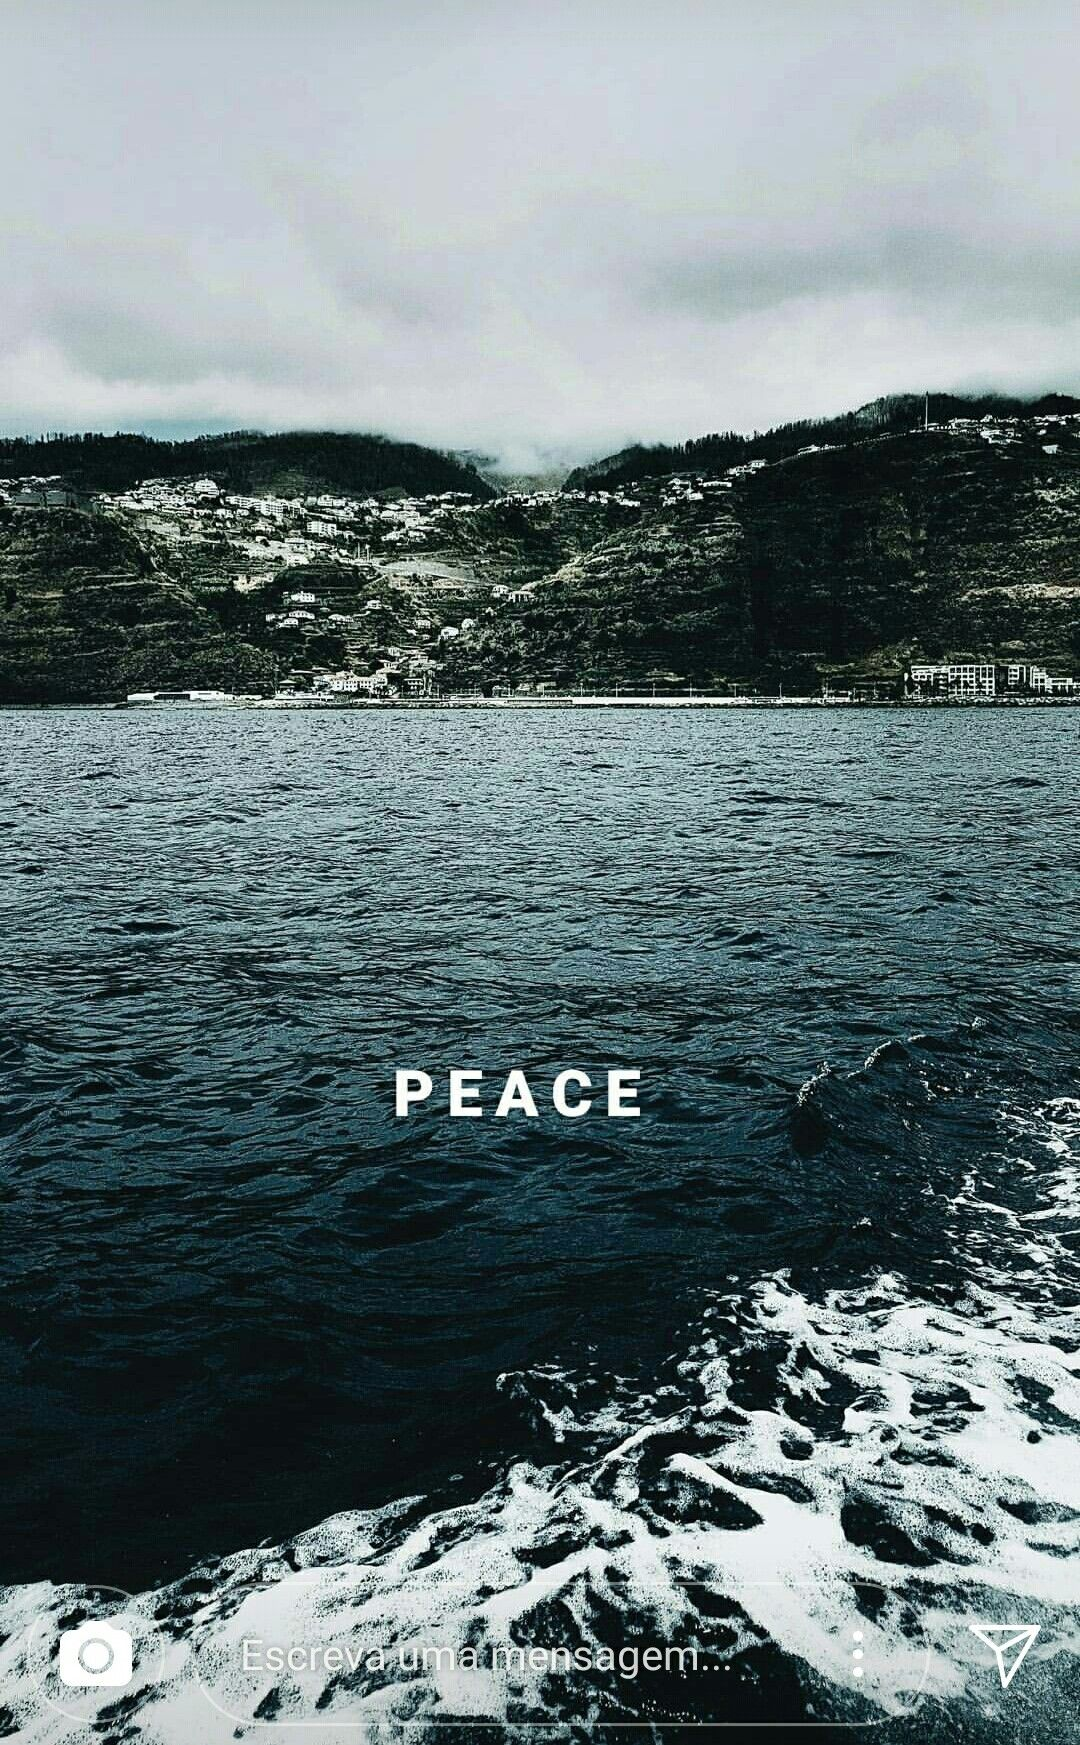 peace wallpaper Wallpaper quotes Aesthetic wallpapers Phone 1080x1745